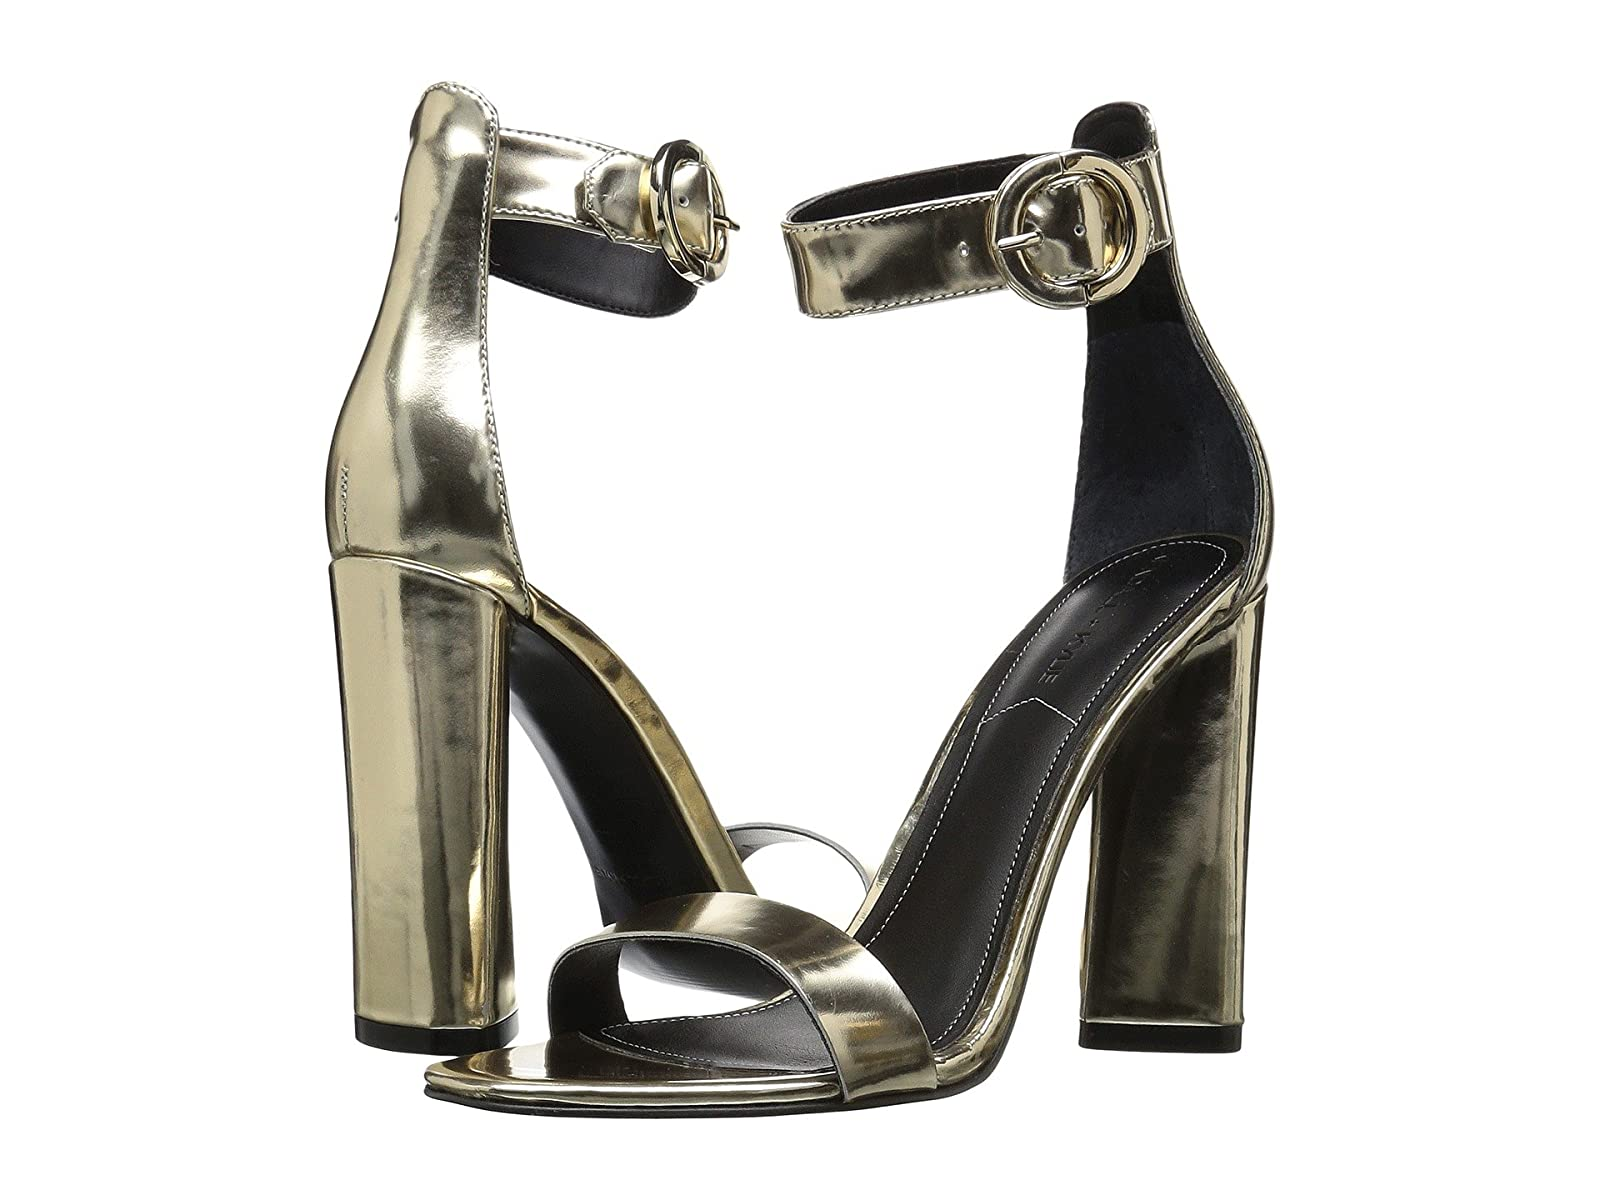 KENDALL + KYLIE GiselleCheap and distinctive eye-catching shoes